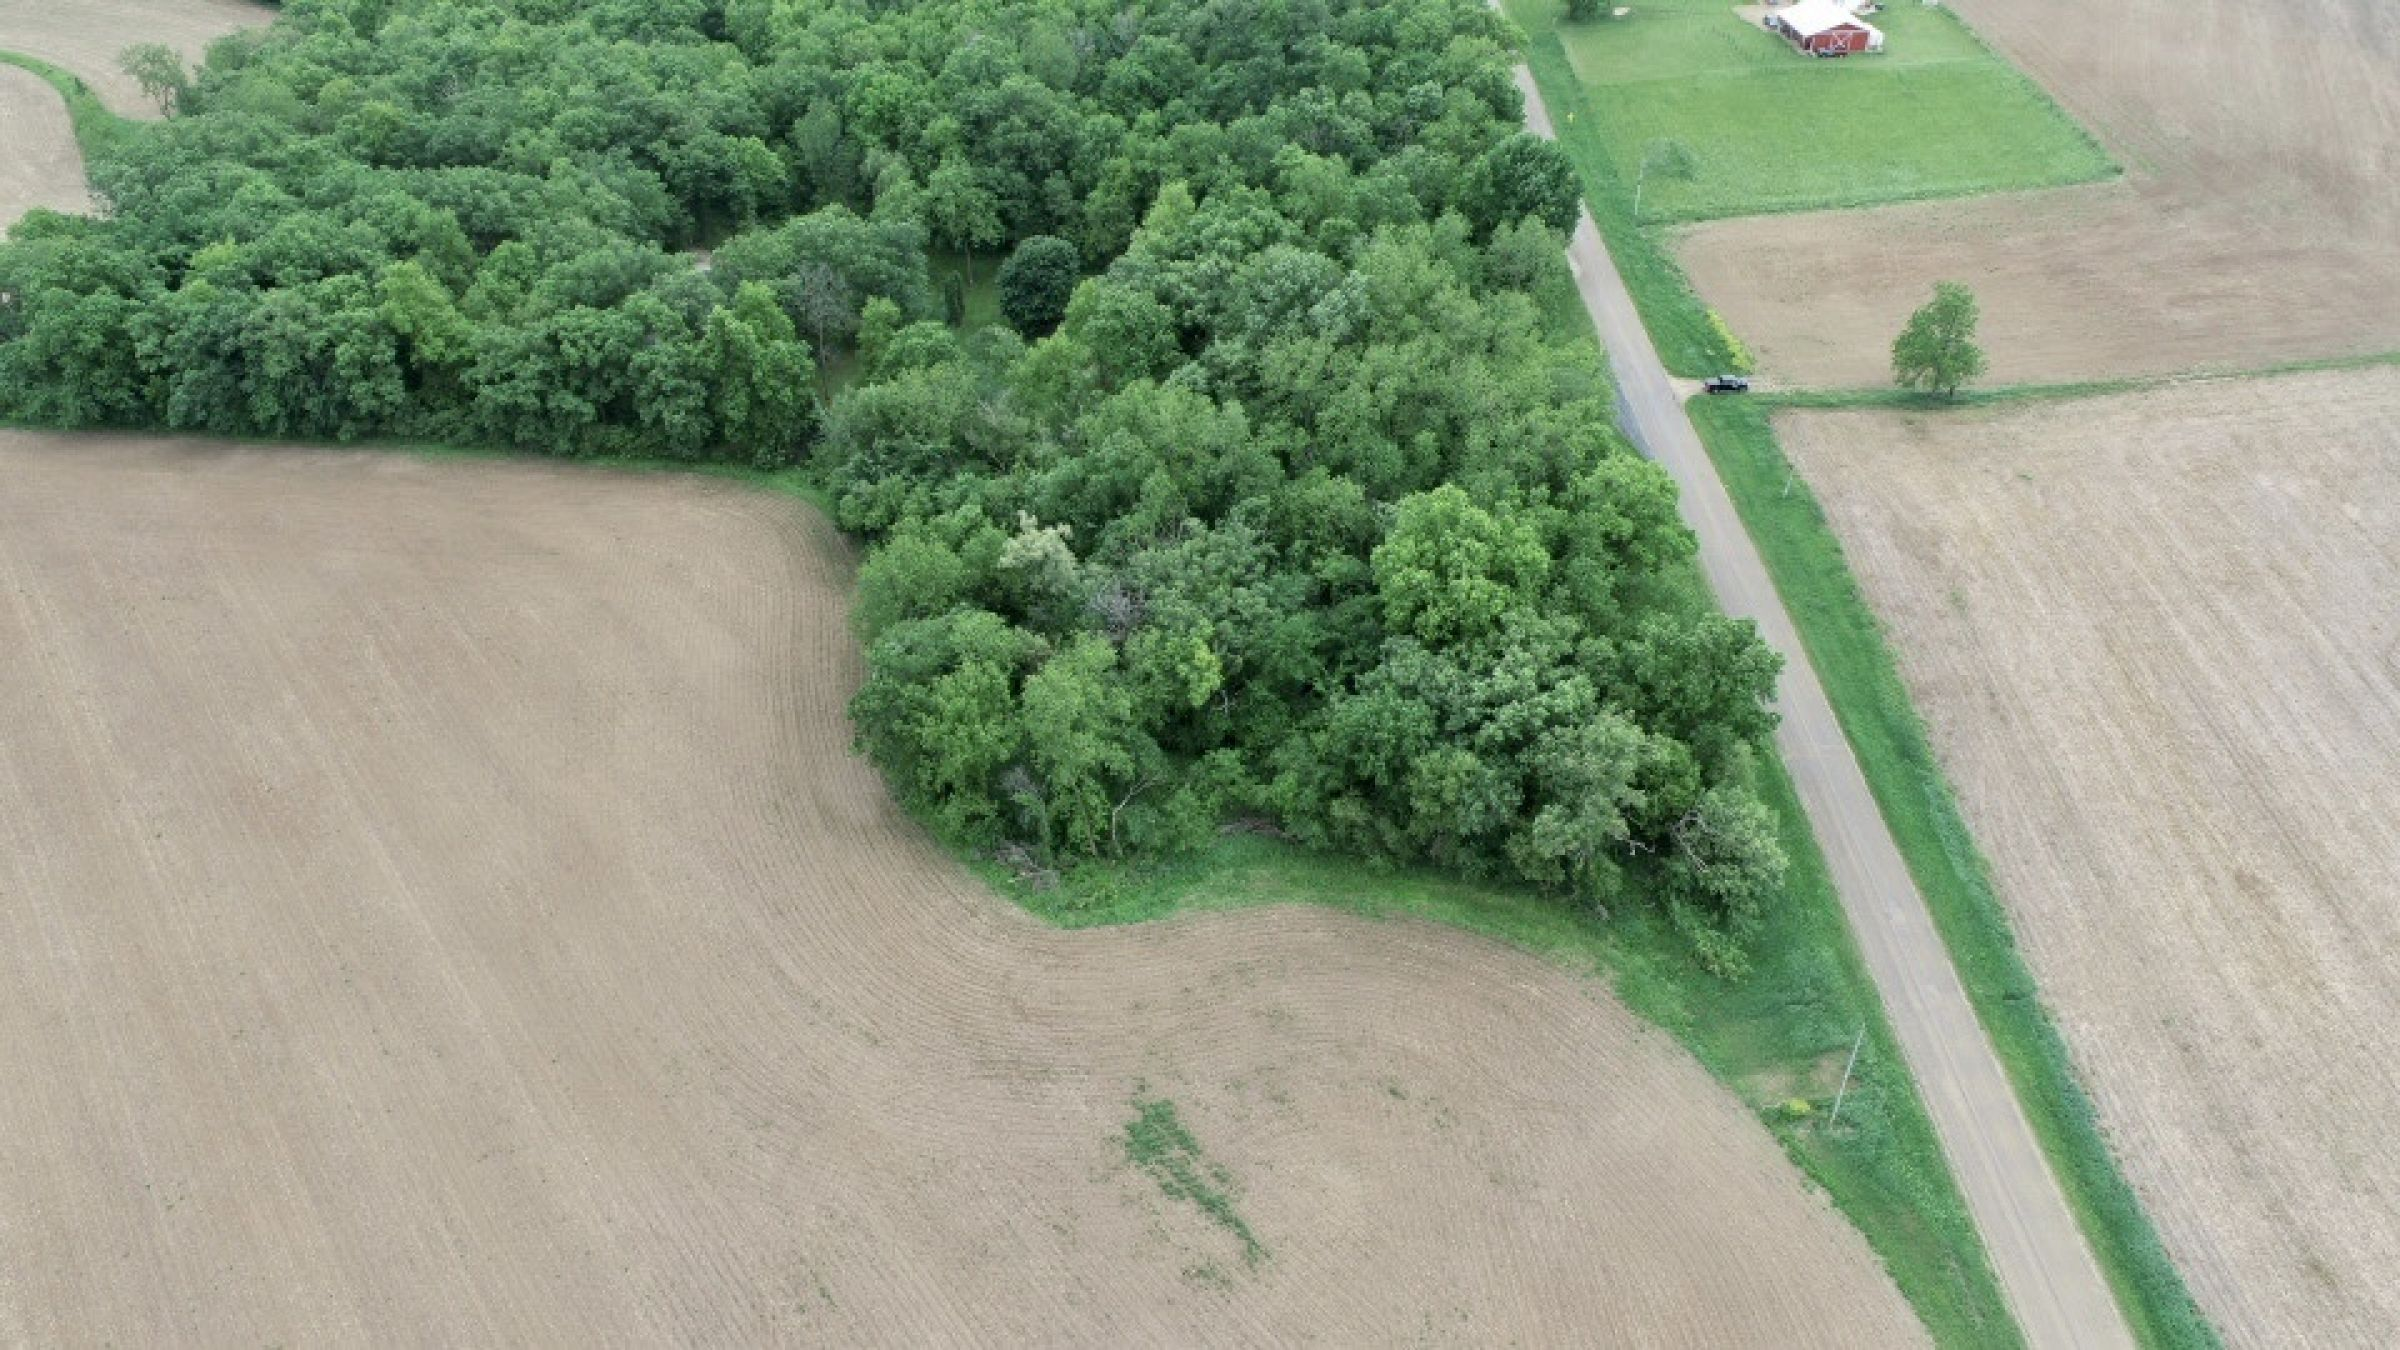 land-lafayette-county-wisconsin-1-acres-listing-number-15559-7-2021-05-28-184447.jpg